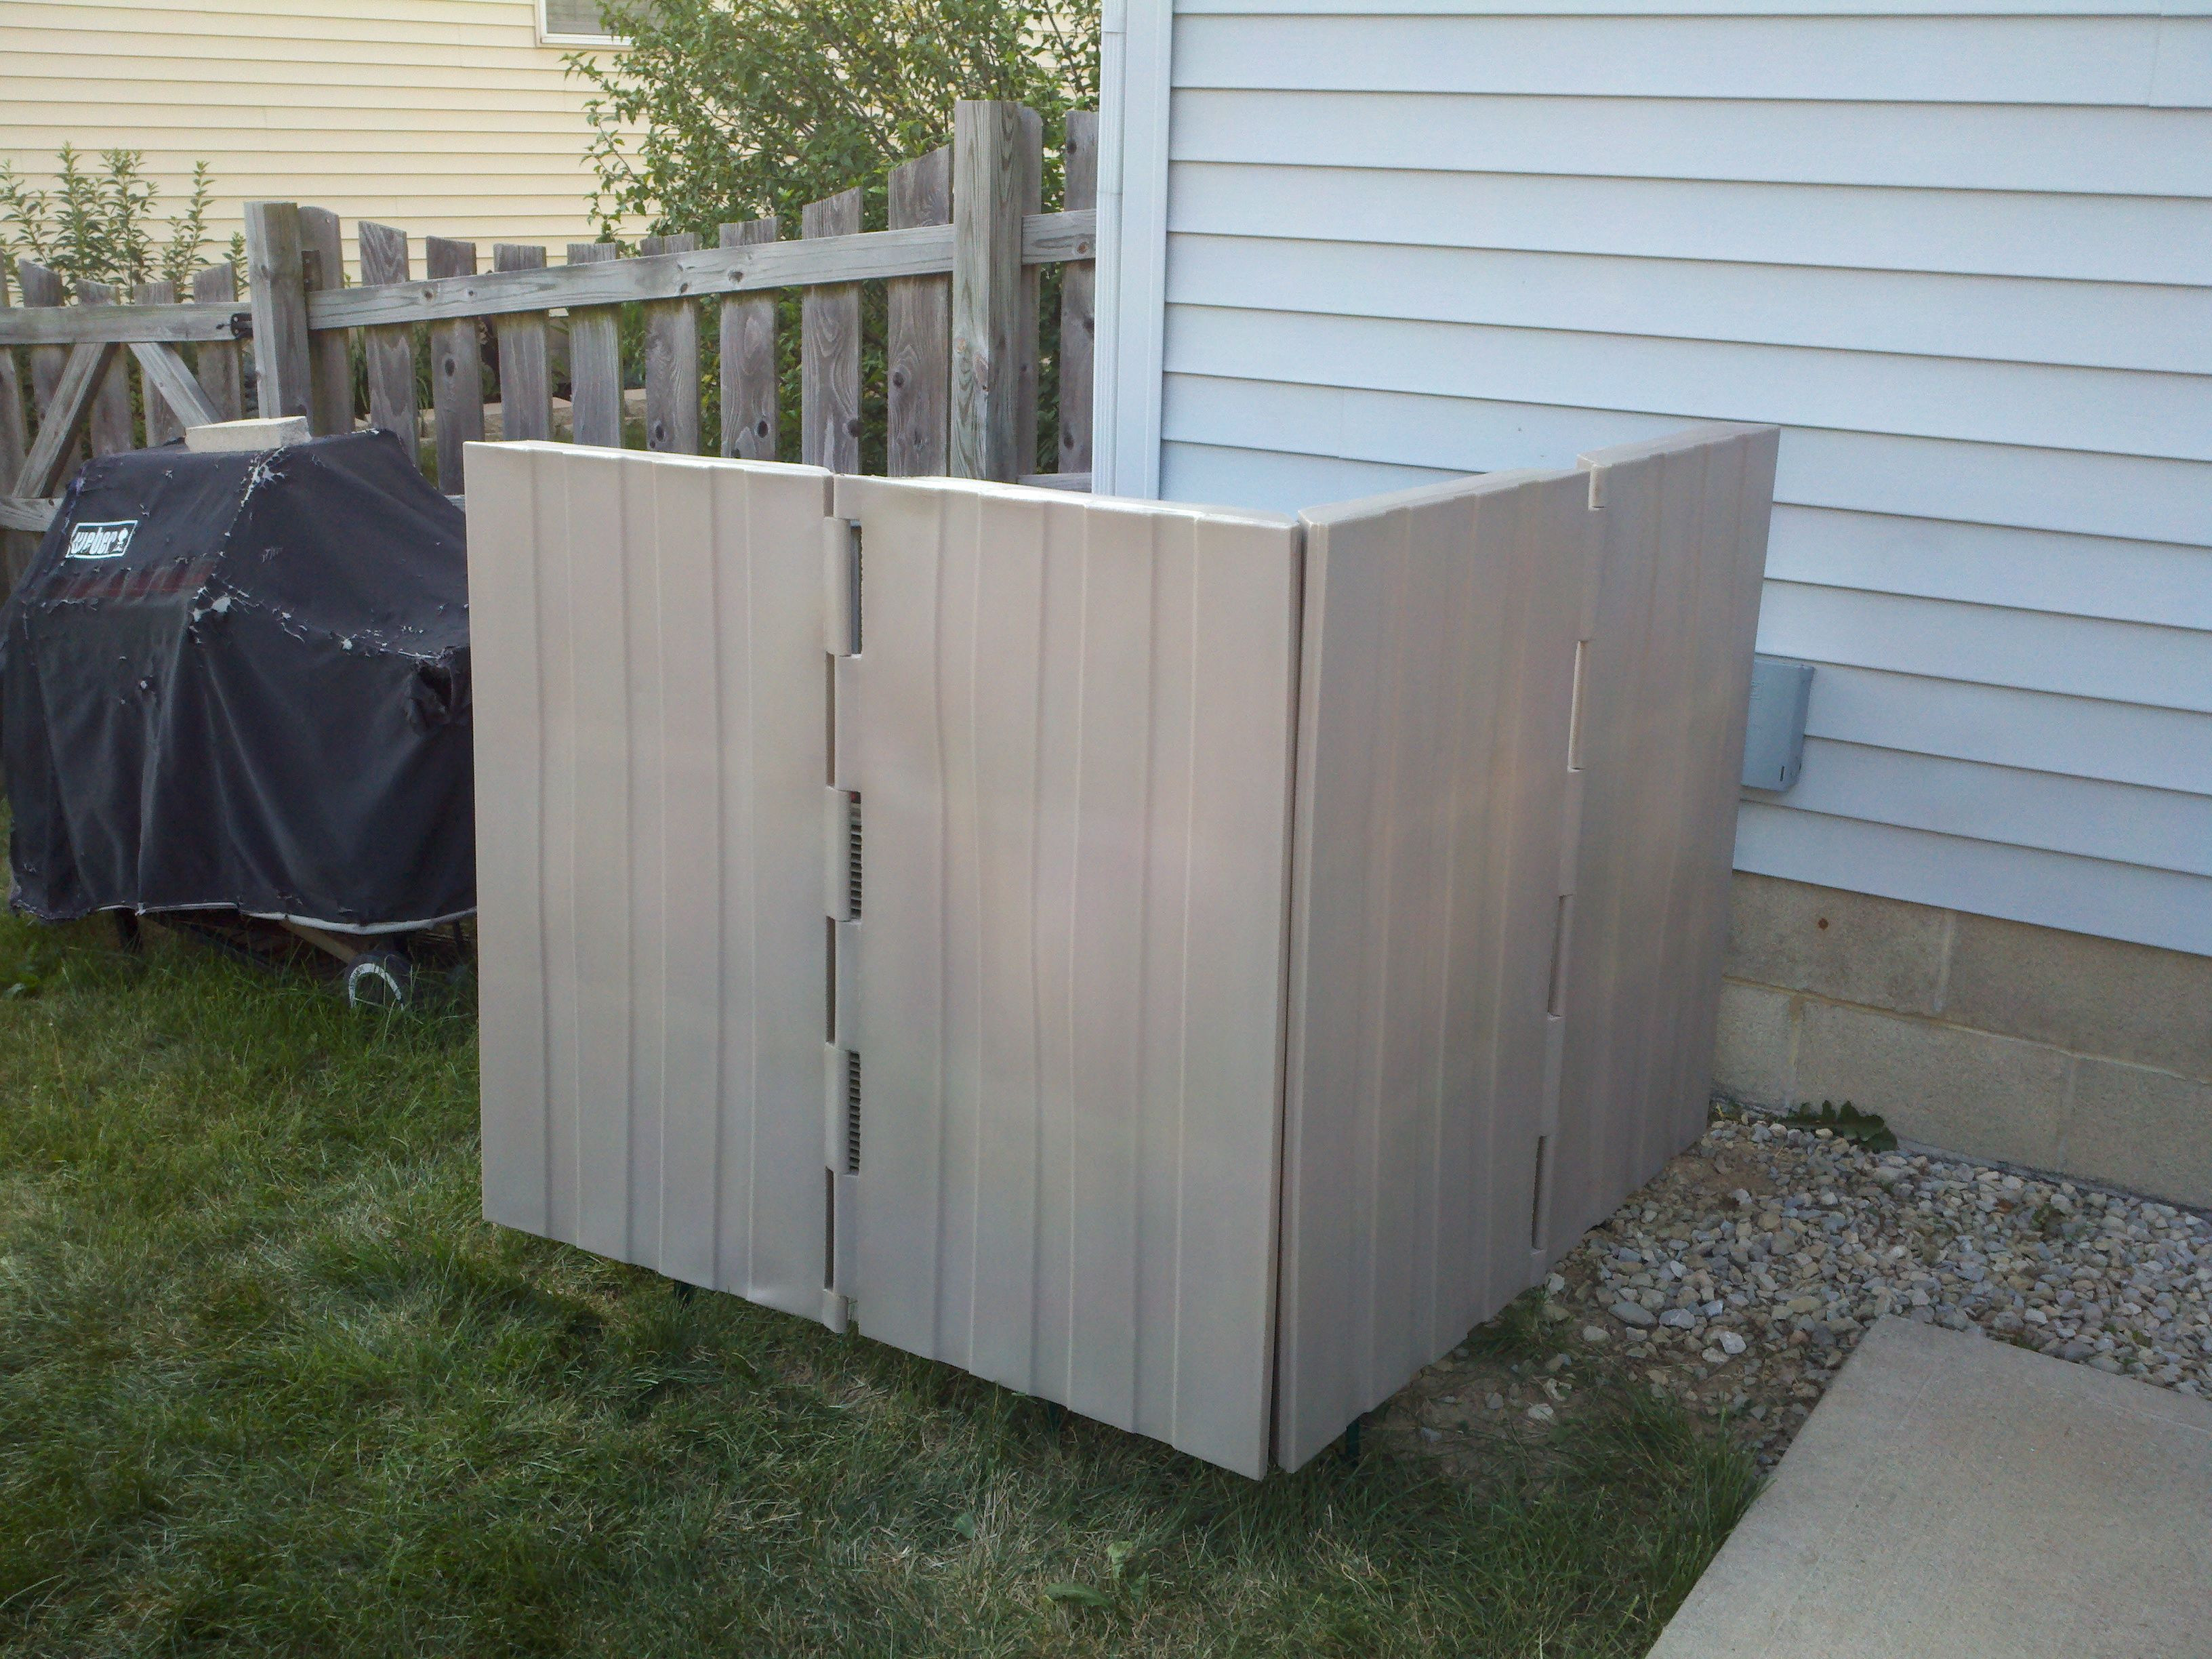 Quiet Fence Two Sets Setup In L Shape To Block Sound Travel To The Patio Loud Air Conditioner Air Conditioner Covers Outdoor Storage Box